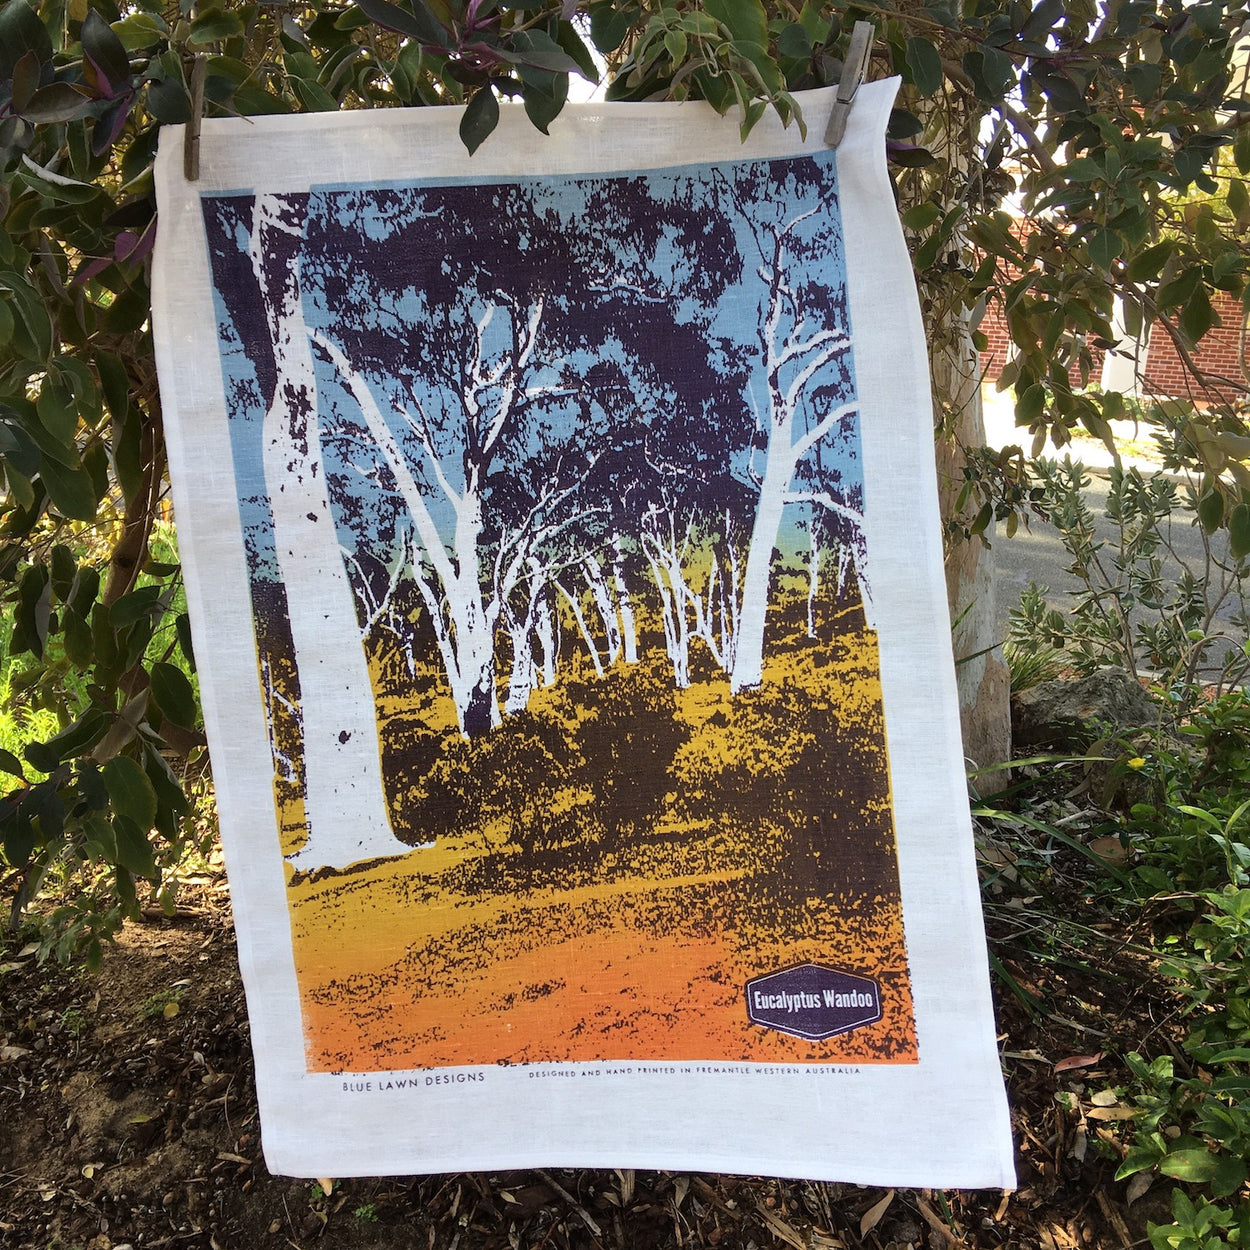 Photo of Eucalyptus wandoo screenprinted on a tea towel.